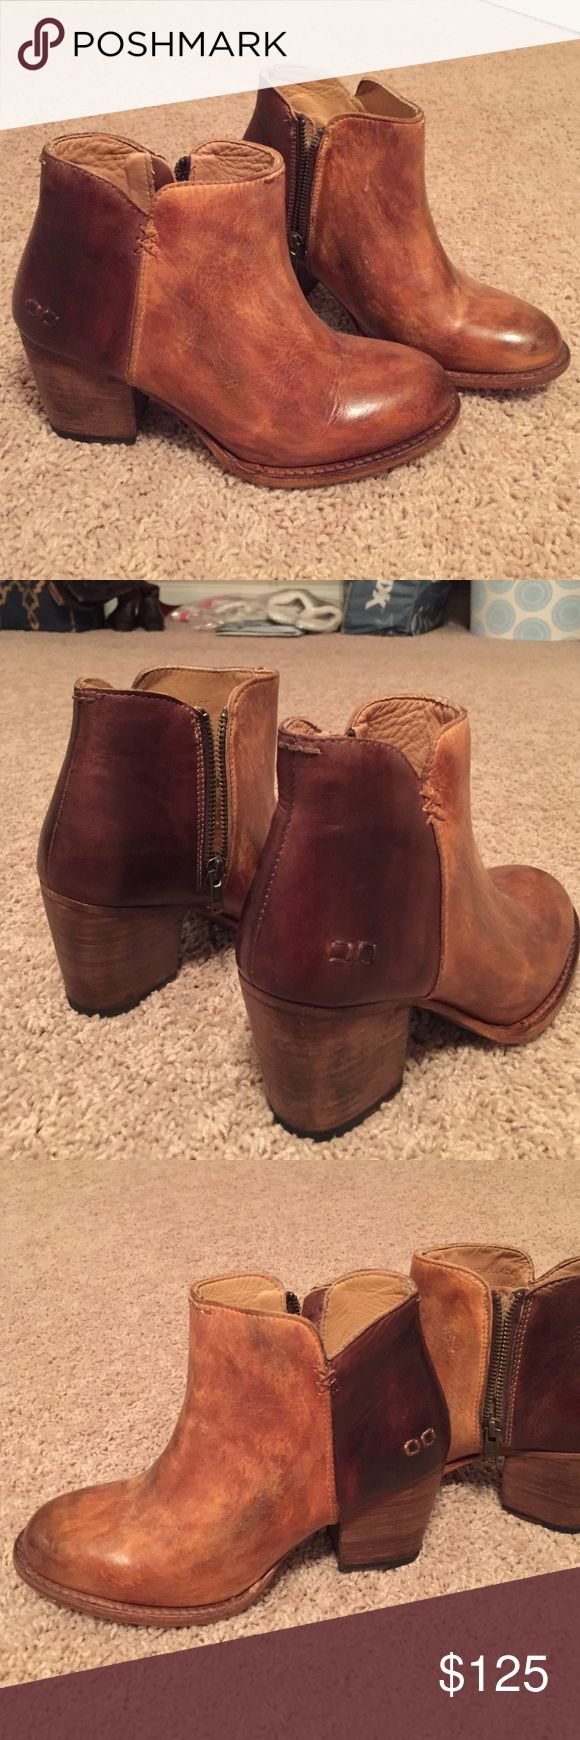 NEW Bed Stu Two Toned Leather Booties! NEW Bed Stu Two Toned Leather Booties! Size: 7.5!!! Brand new, never been worn, in PERFECT condition!!! These shoes are amazing and SO well made!!!! These will last you years and years and still look new!! Do not come with original box! Bed Stu Shoes